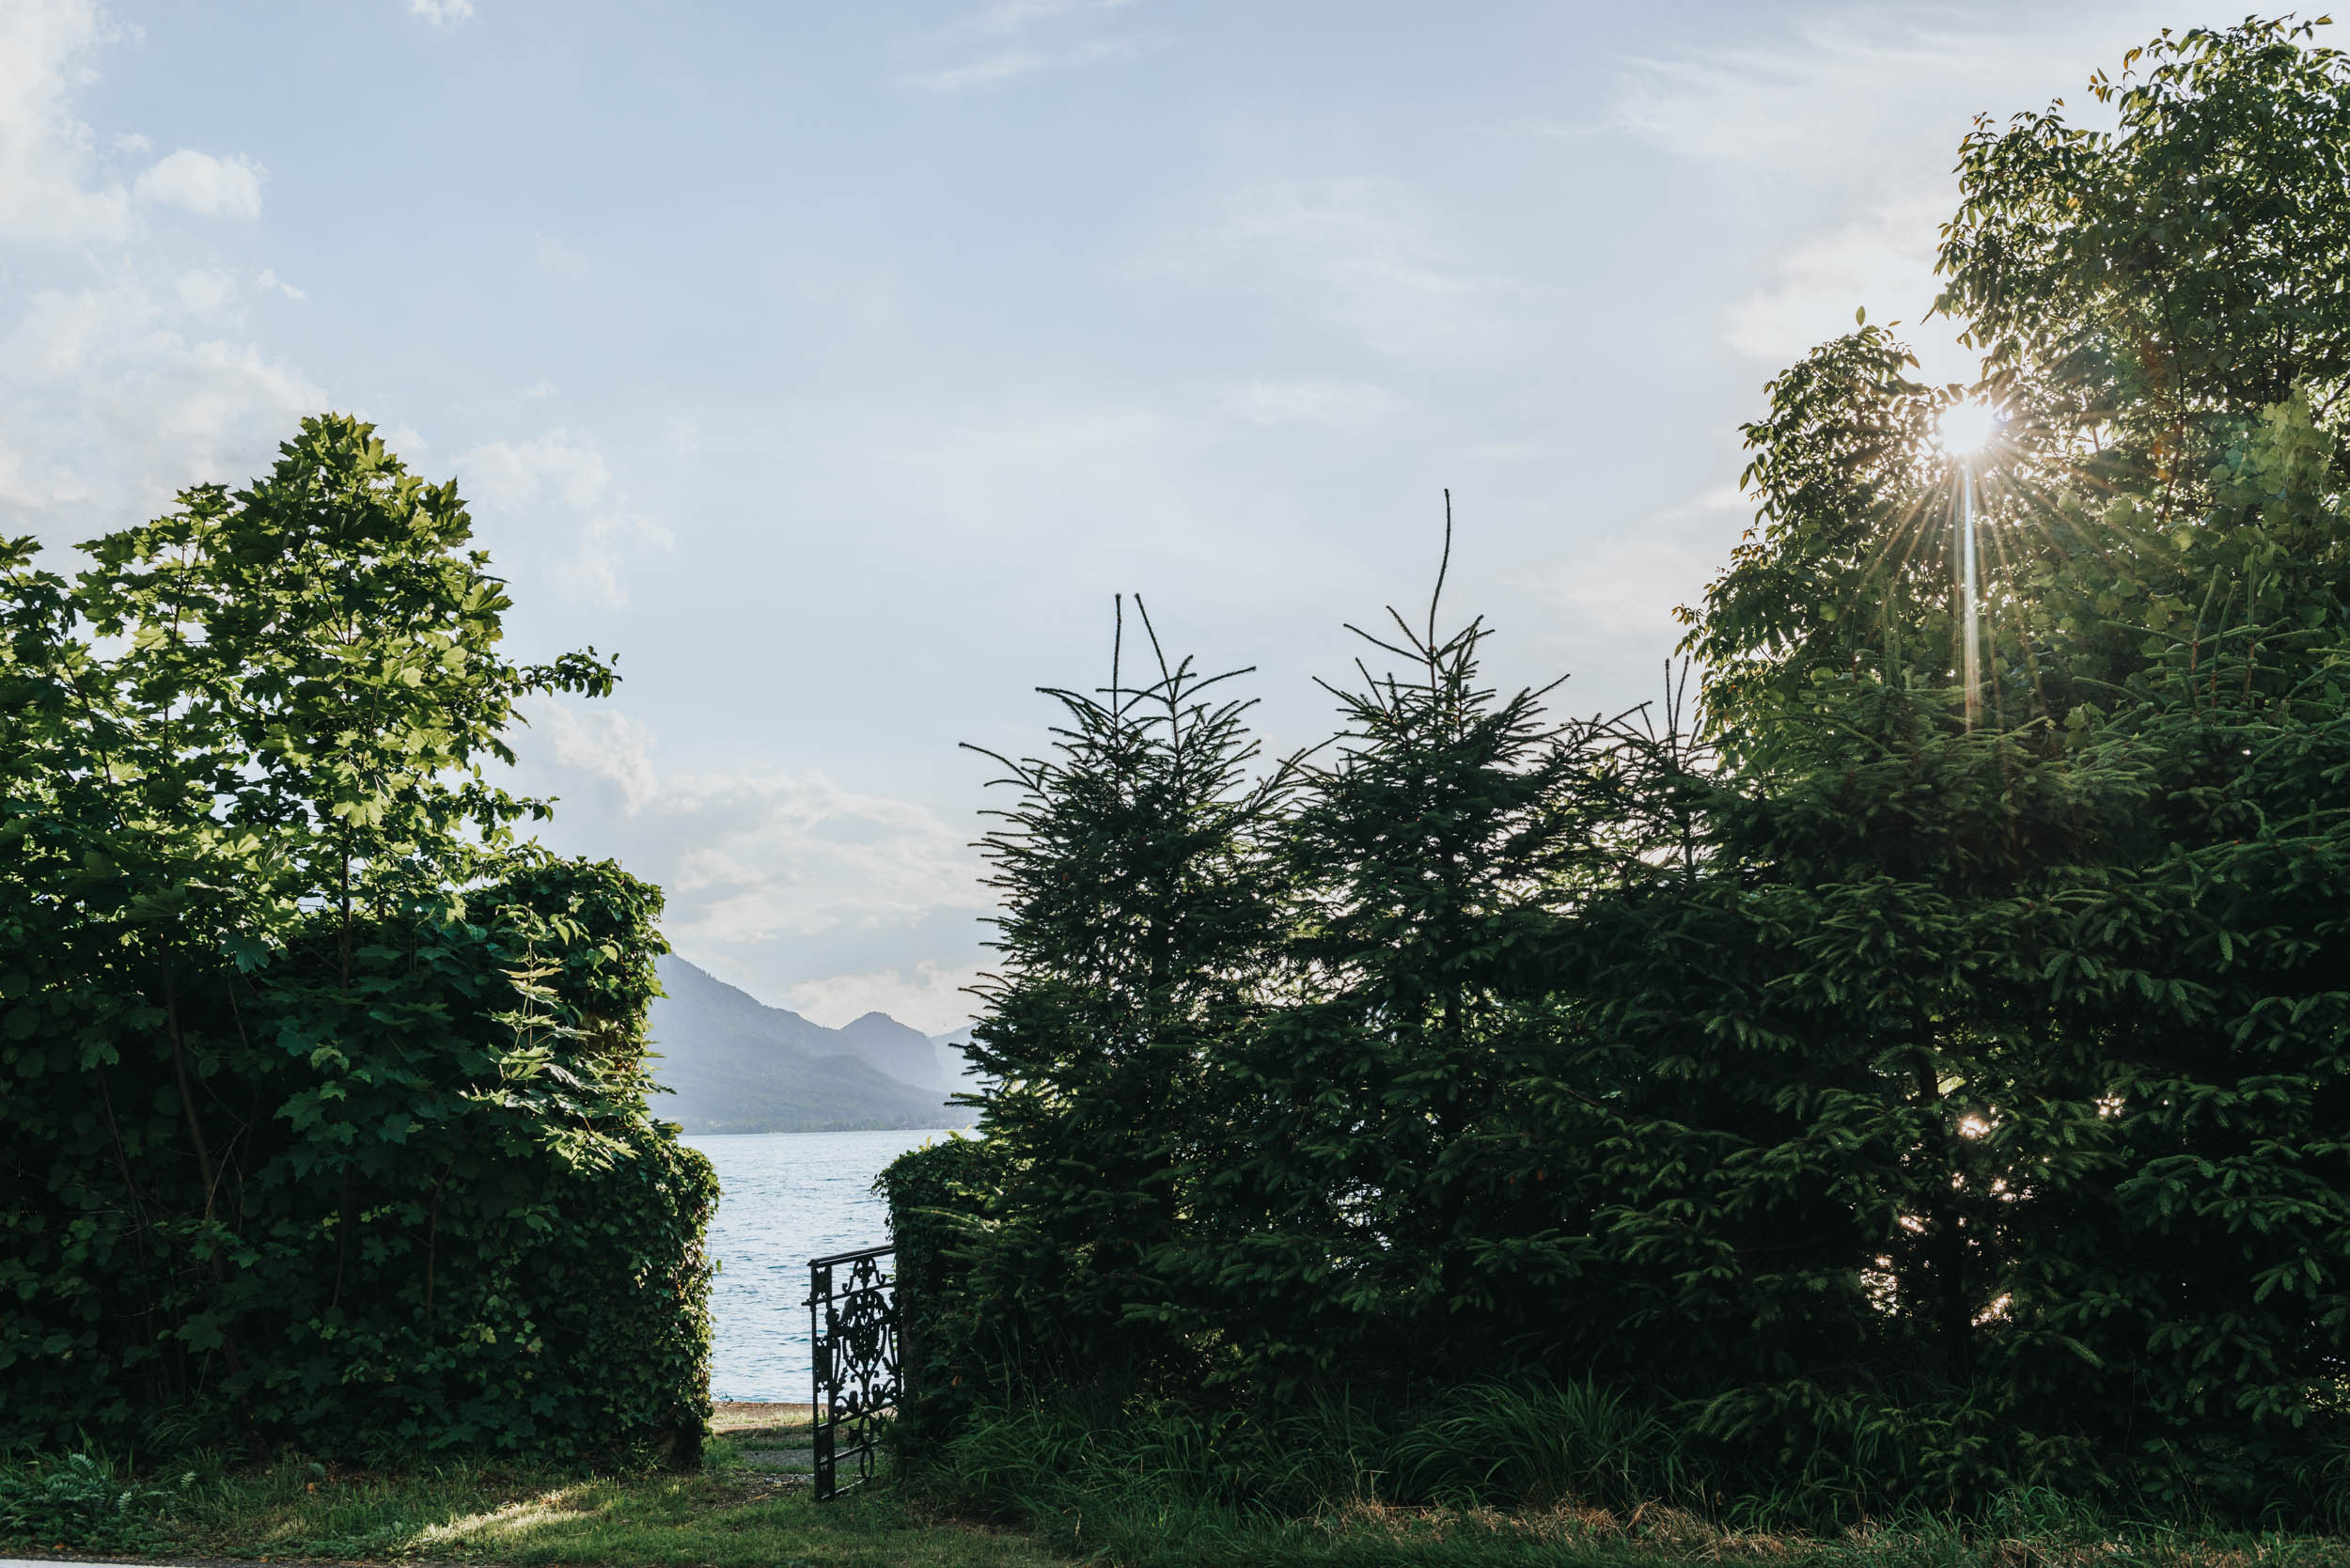 belle&sass_Villa Langer_Attersee_understated_wedding-5.jpg